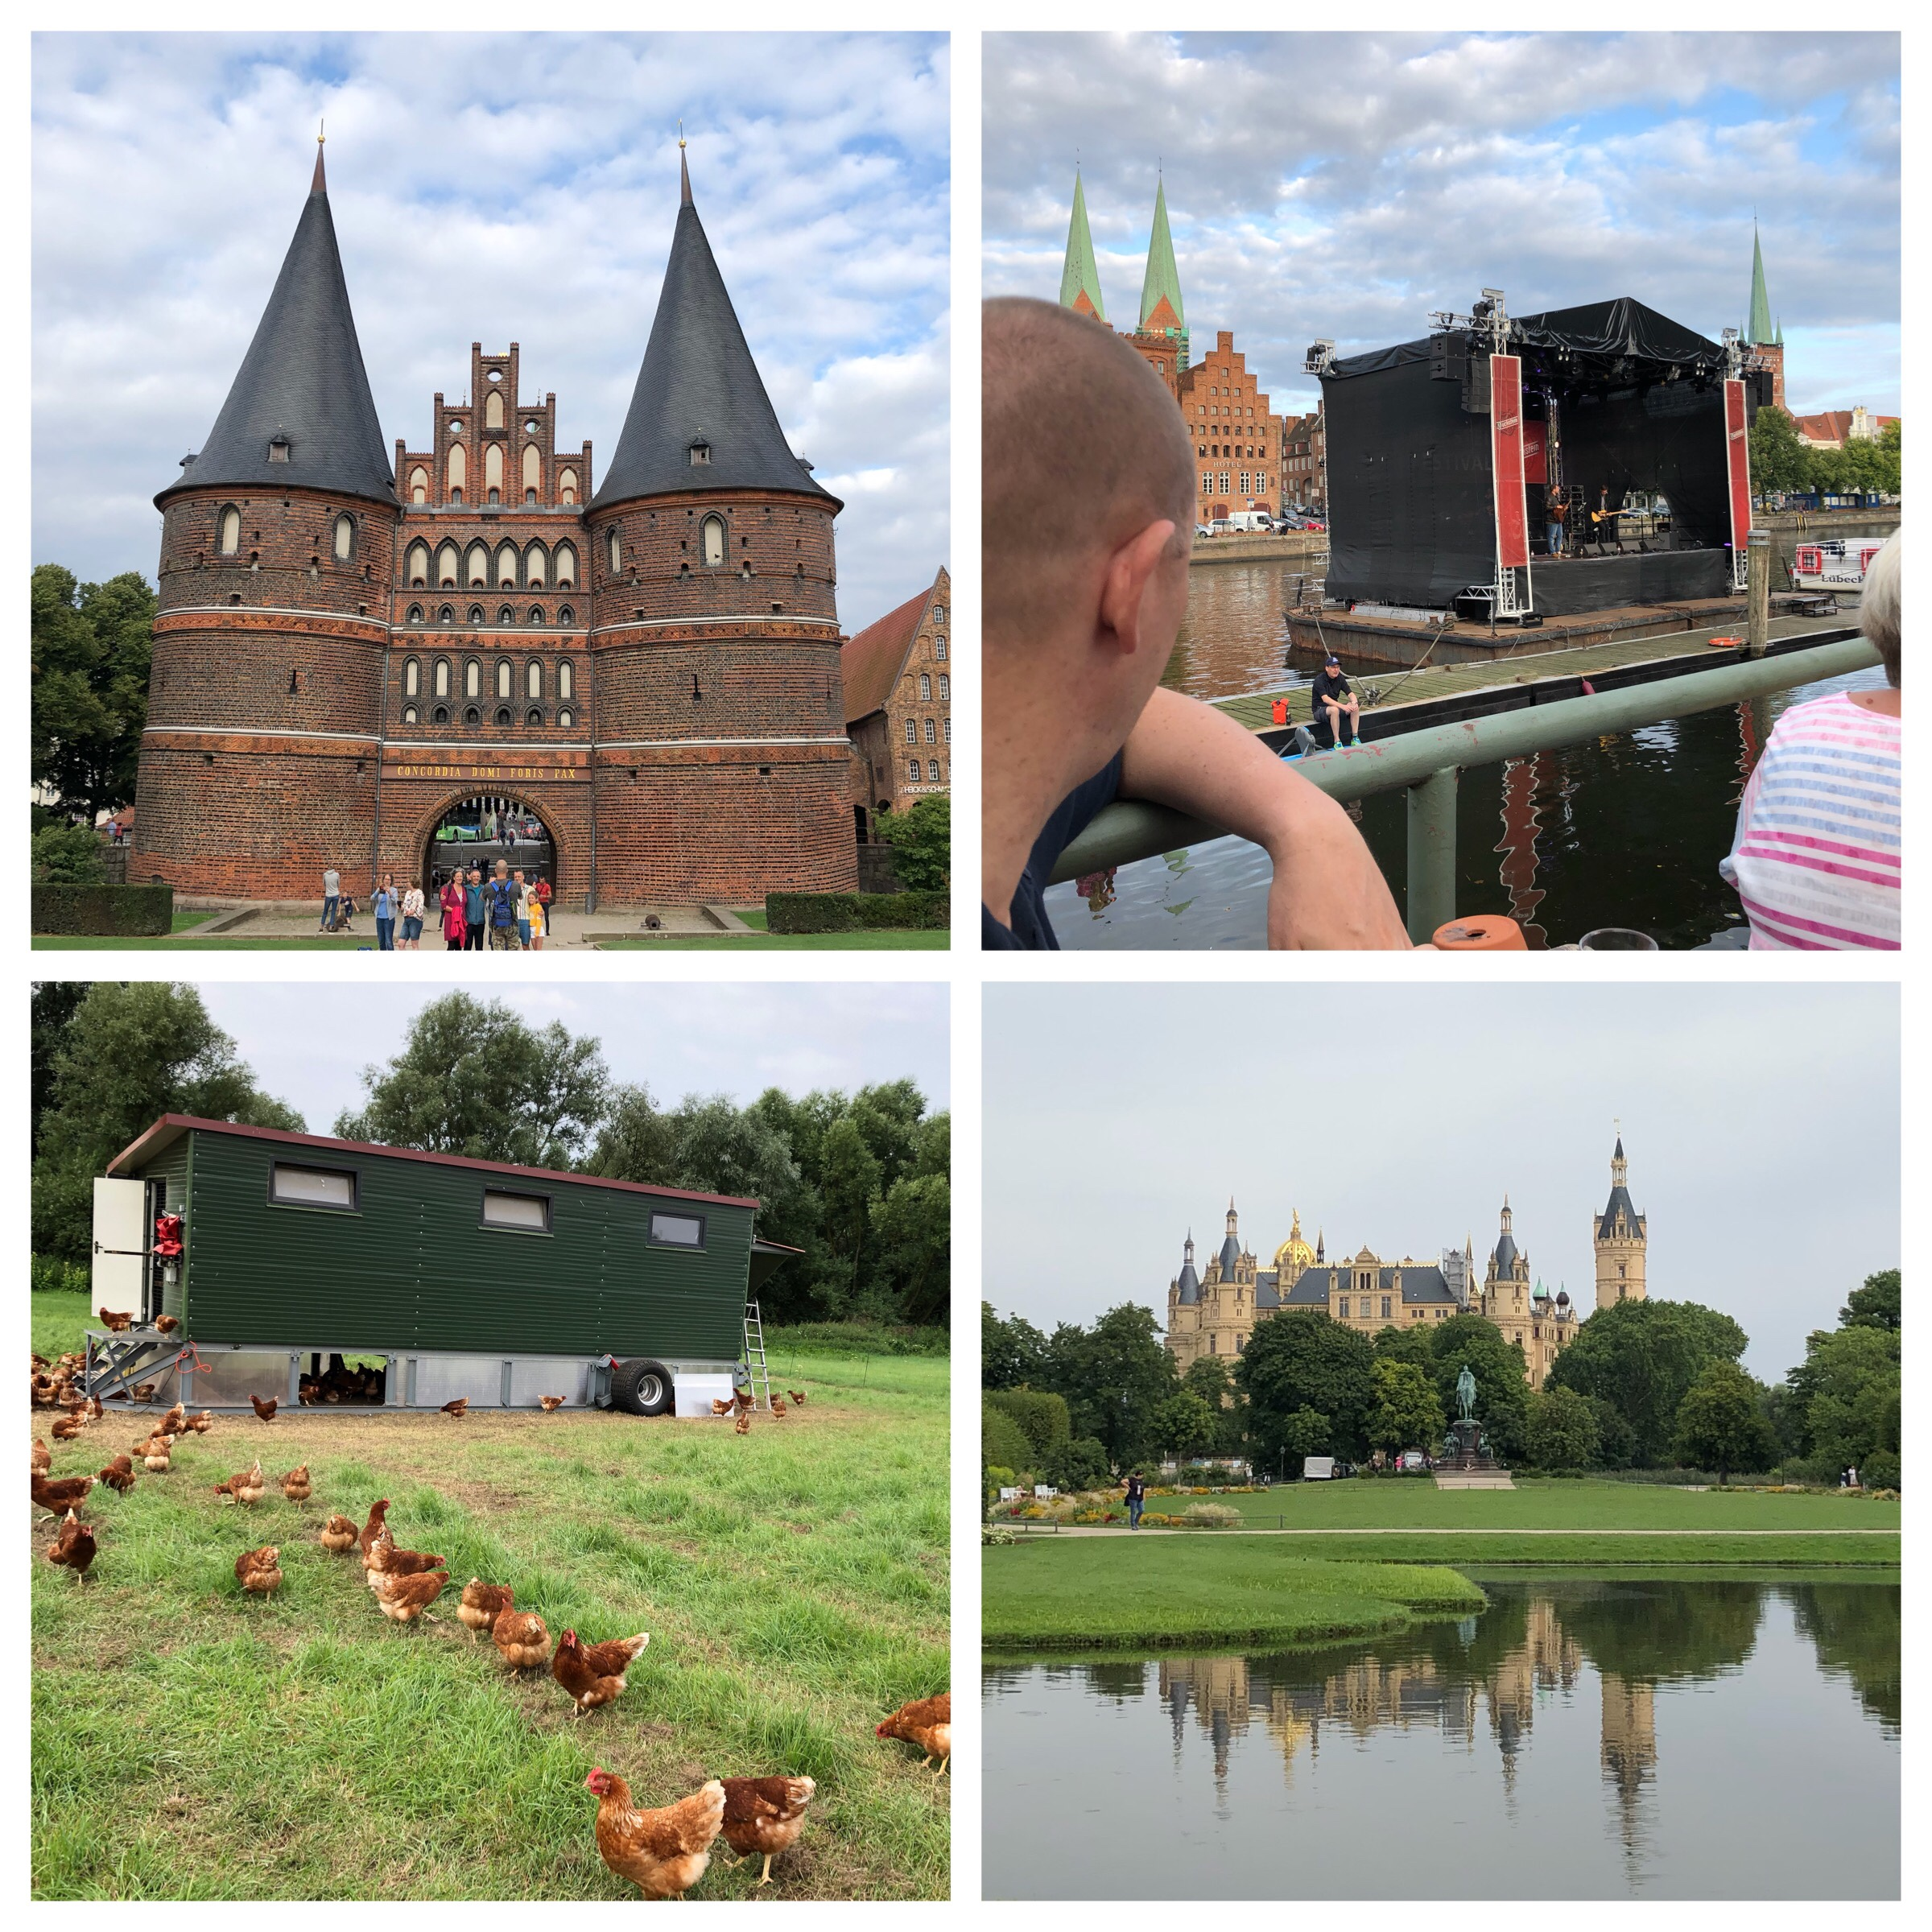 Top left and clockwise: Lübeck's Holstentor Gate (built 1478), Christoph enjoying the music, Schwerin Palace and getting eggs from the source!